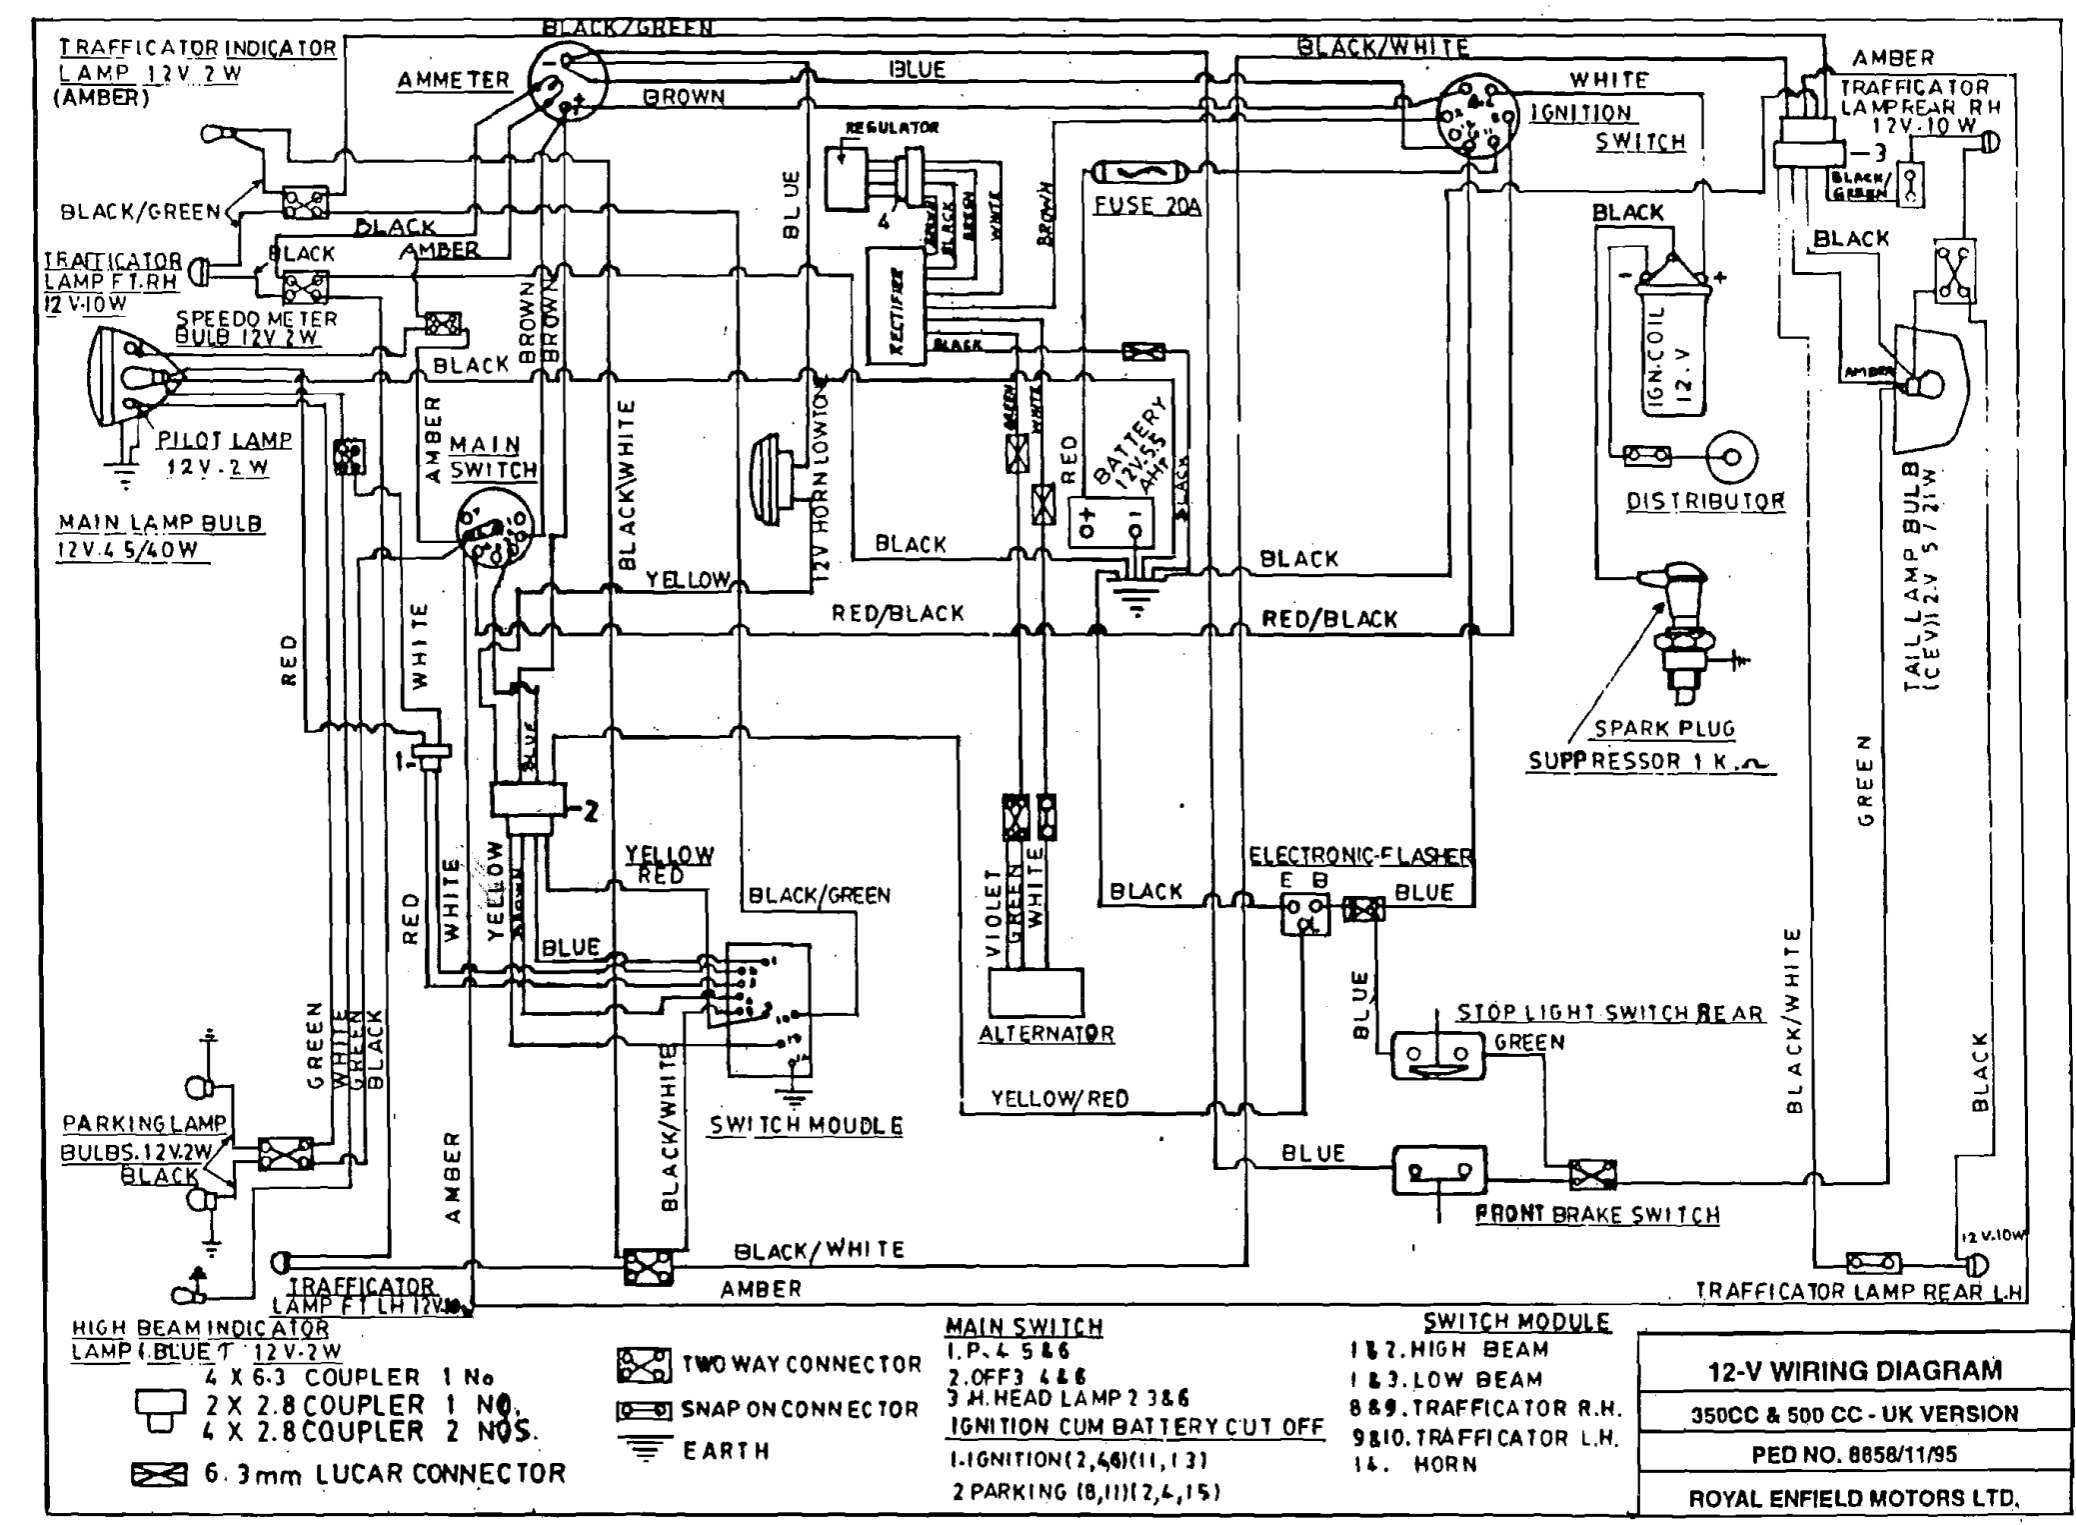 Yamaha Wiring Diagrams - efcaviation.com